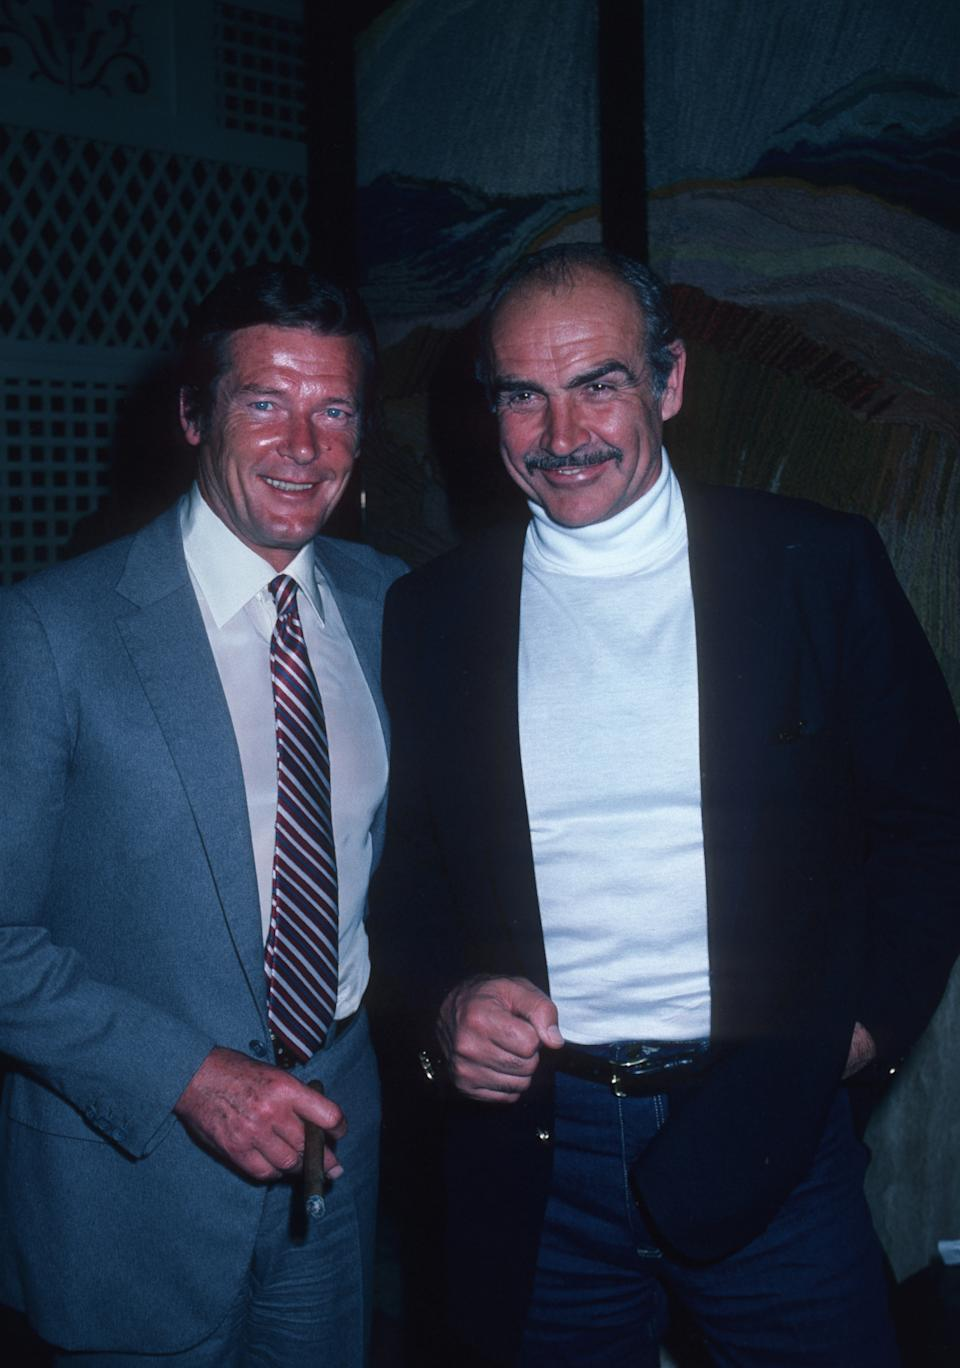 Roger Moore and Sean Connery (Photo by Ron Galella/Ron Galella Collection via Getty Images)